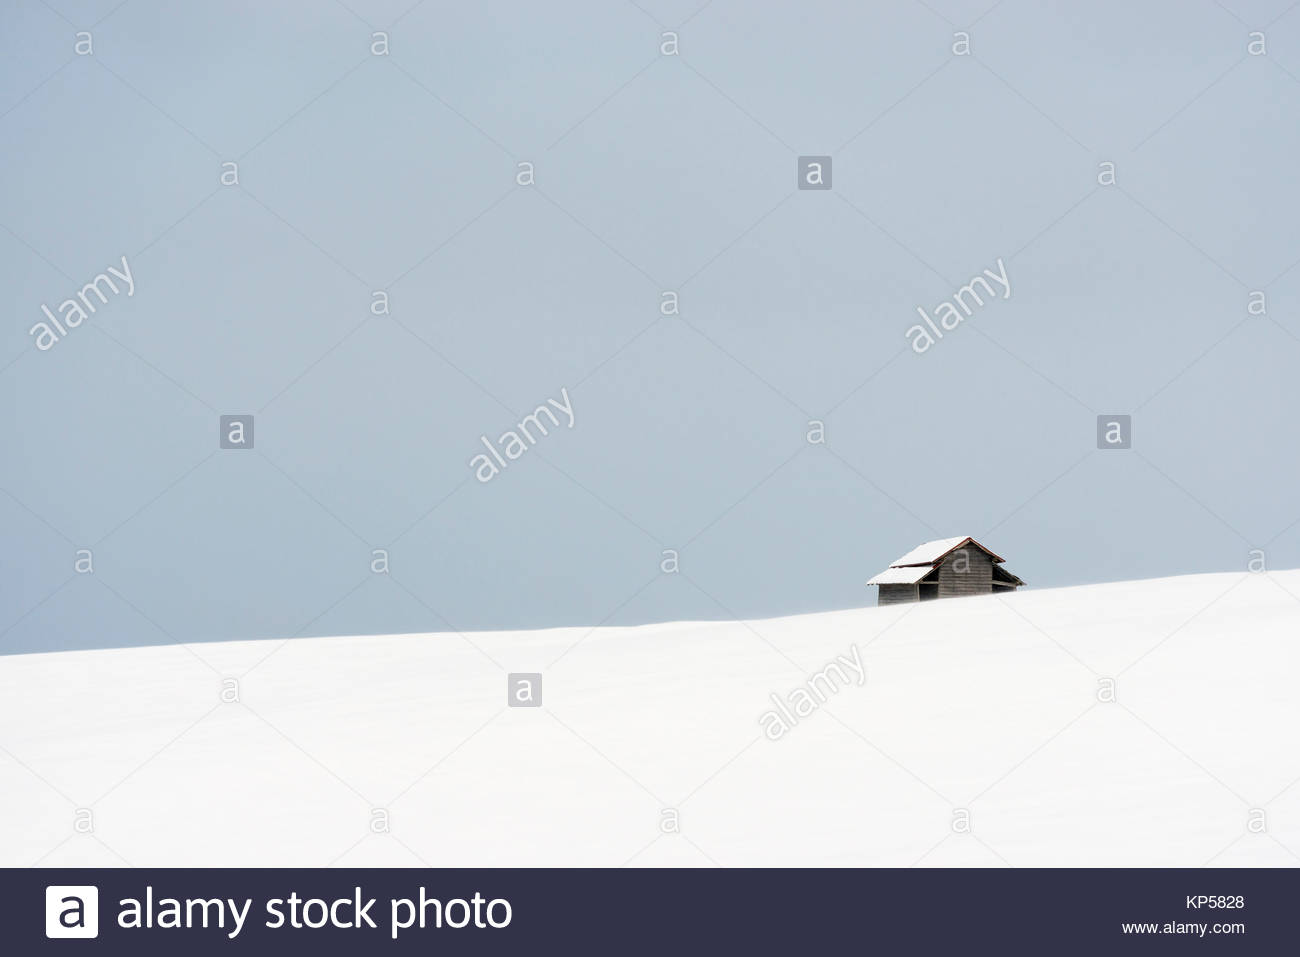 House on a snow covered hill.  Minimalist winter scene in Biei, Hokkaido, Japan - Stock Image